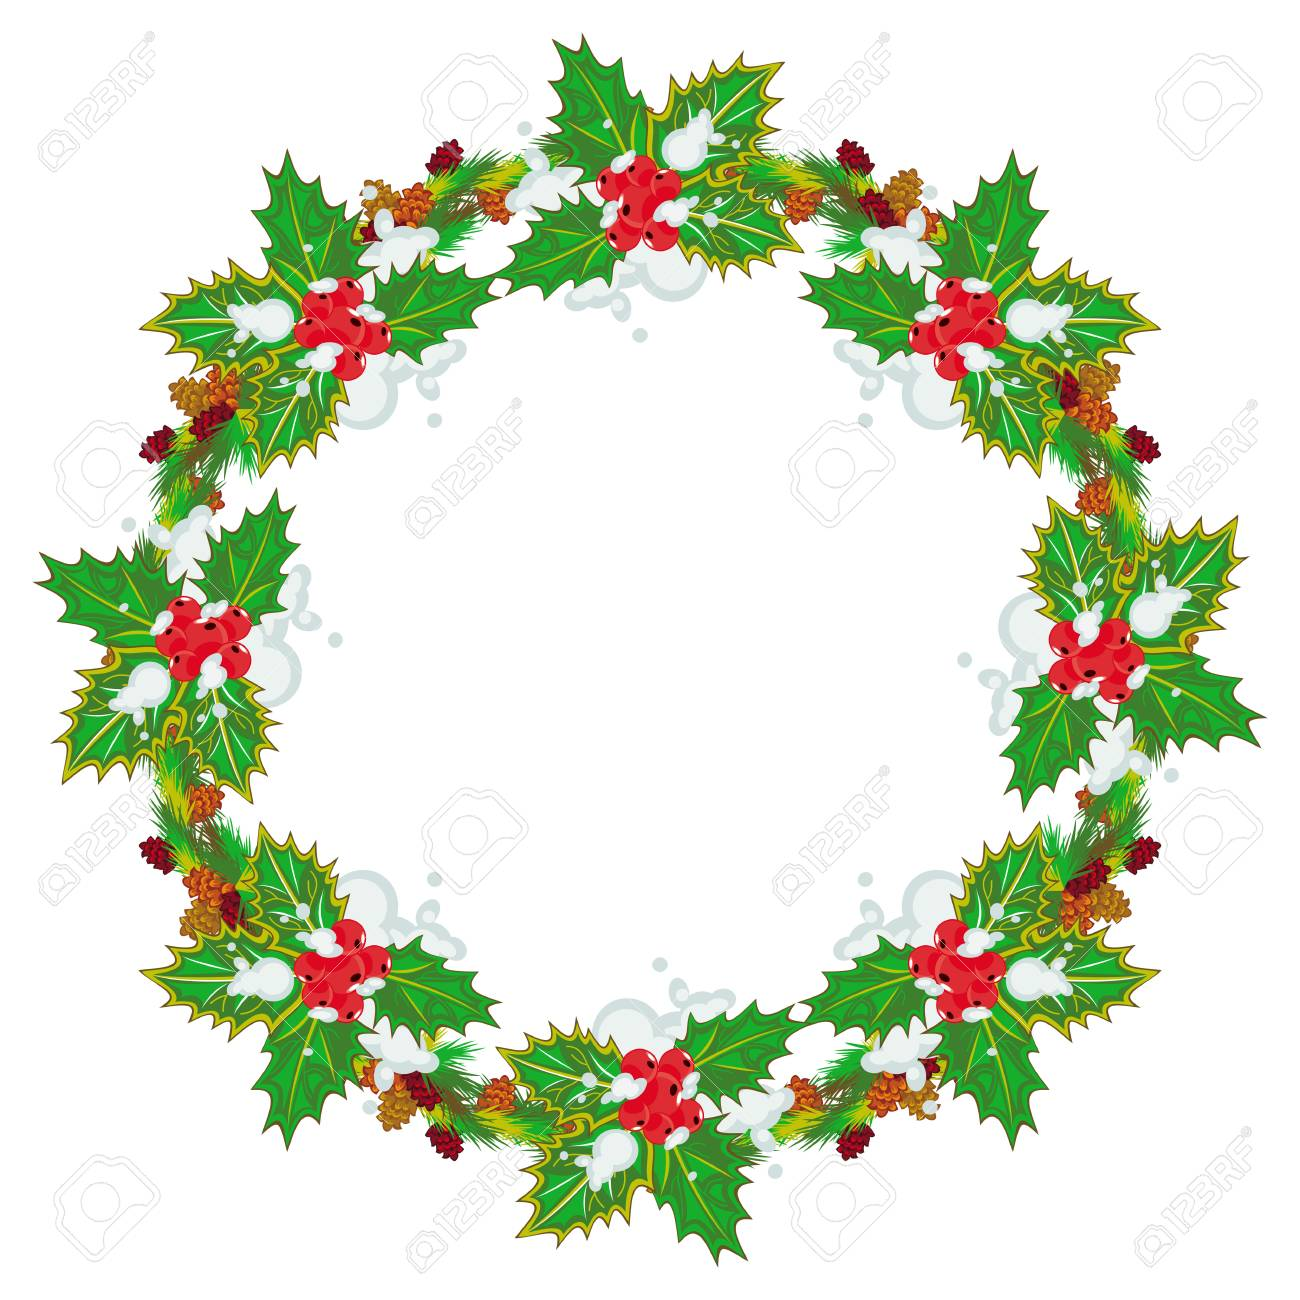 Wreath Christmas New Year Clip art - Pine cone border png download -  780*583 - Free Transparent Wreath png Download. - Clip Art Library